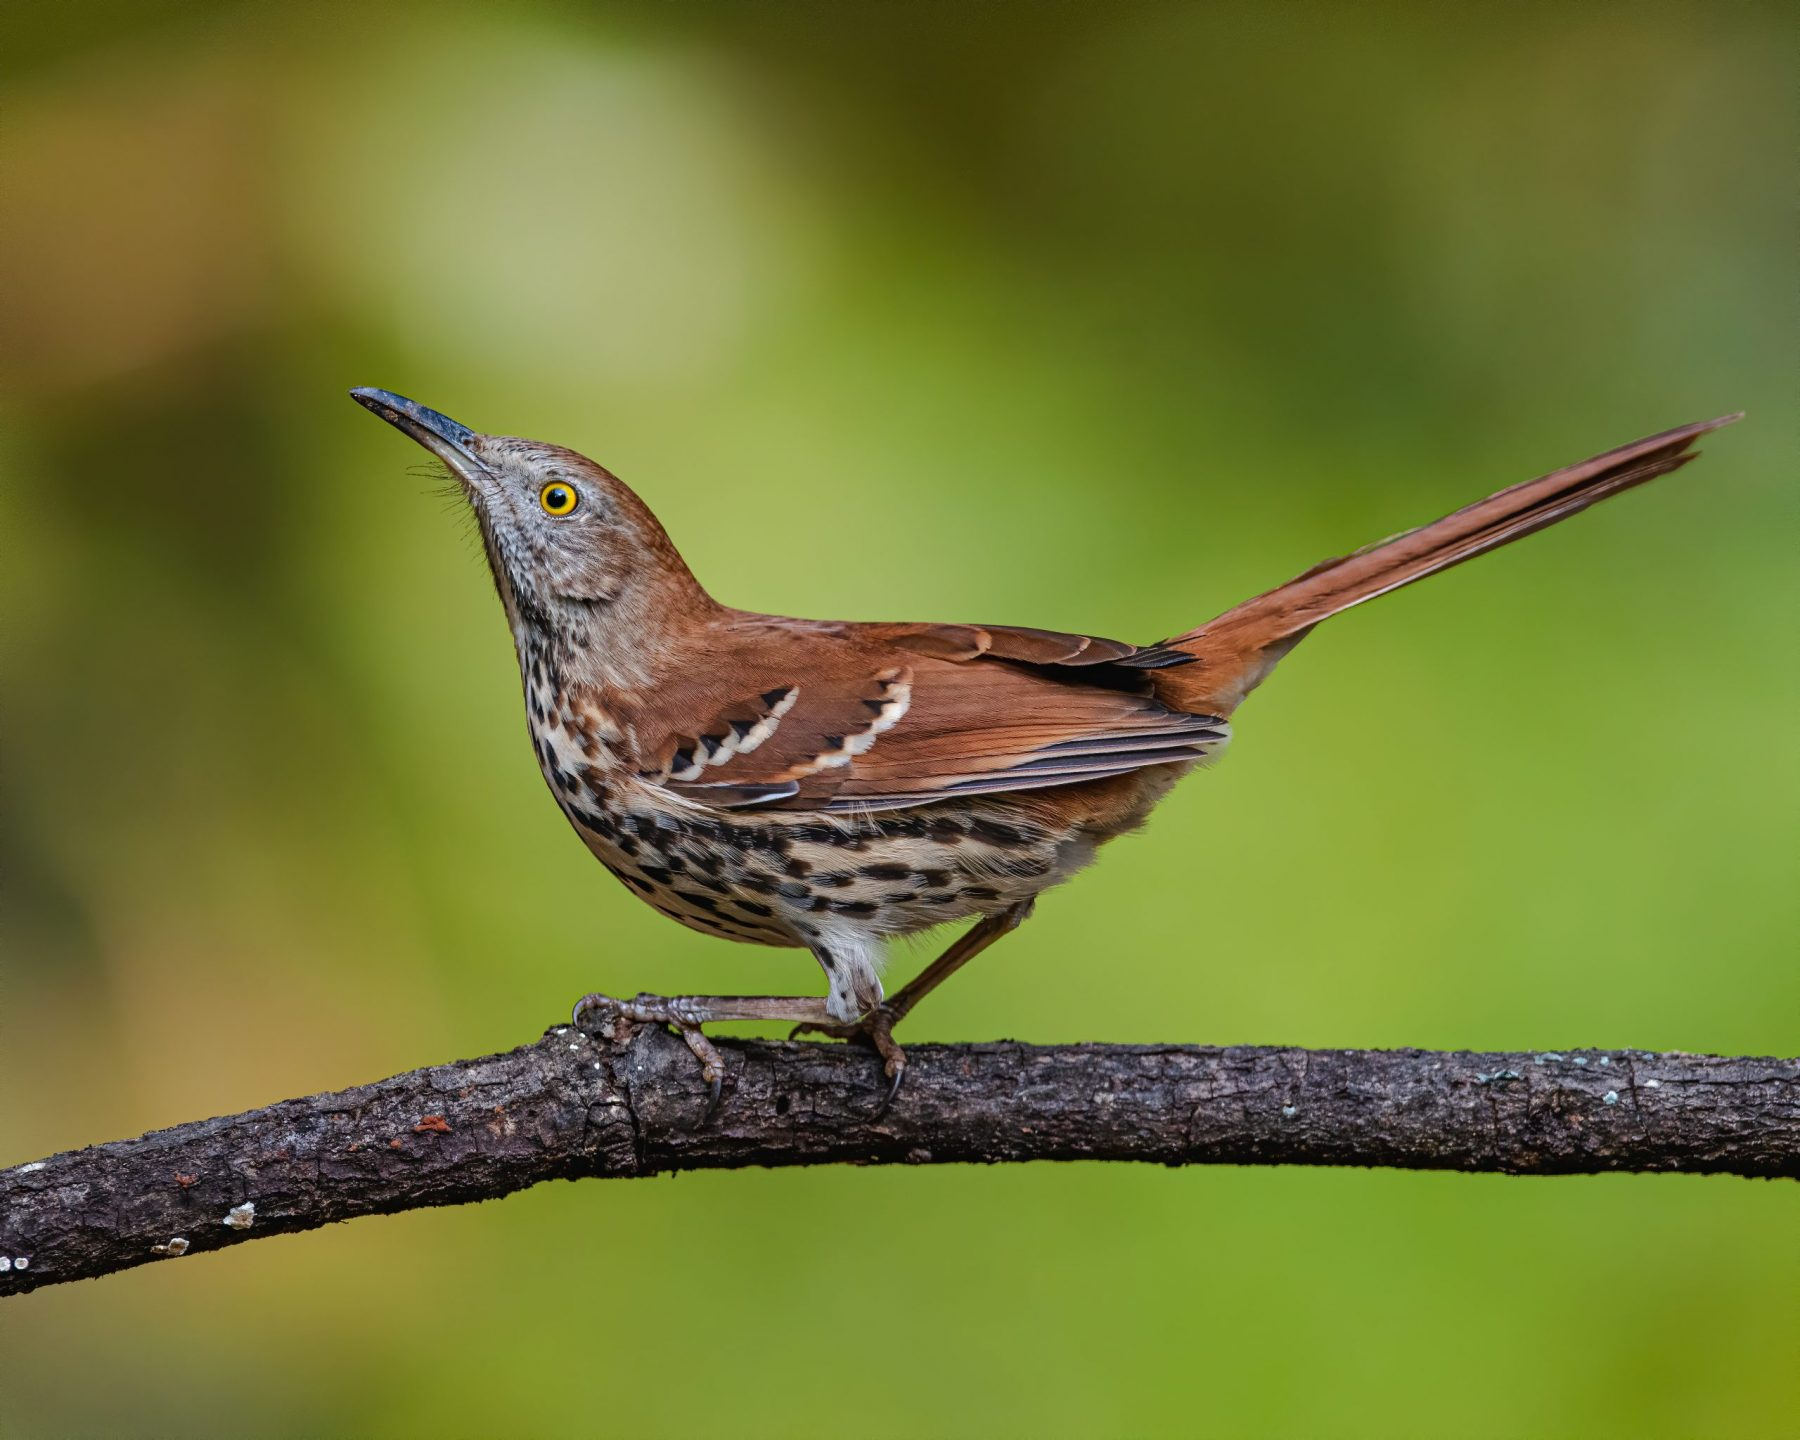 Brown Thrasher by Zach Kohlman